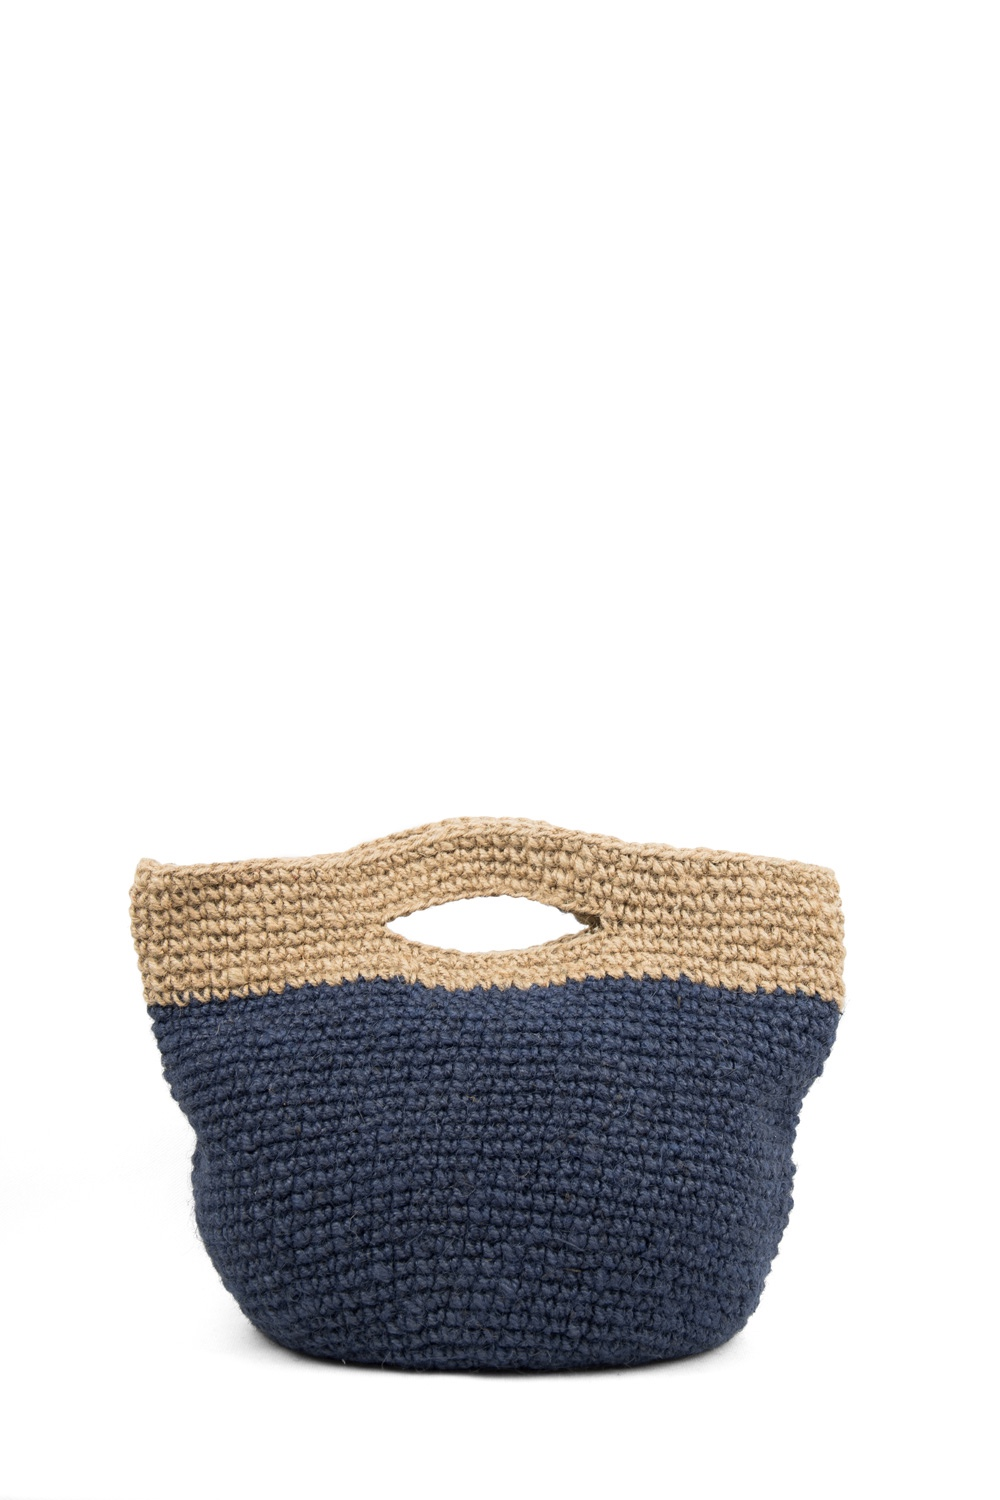 Bag Jute Simplicity, Blue / Natural